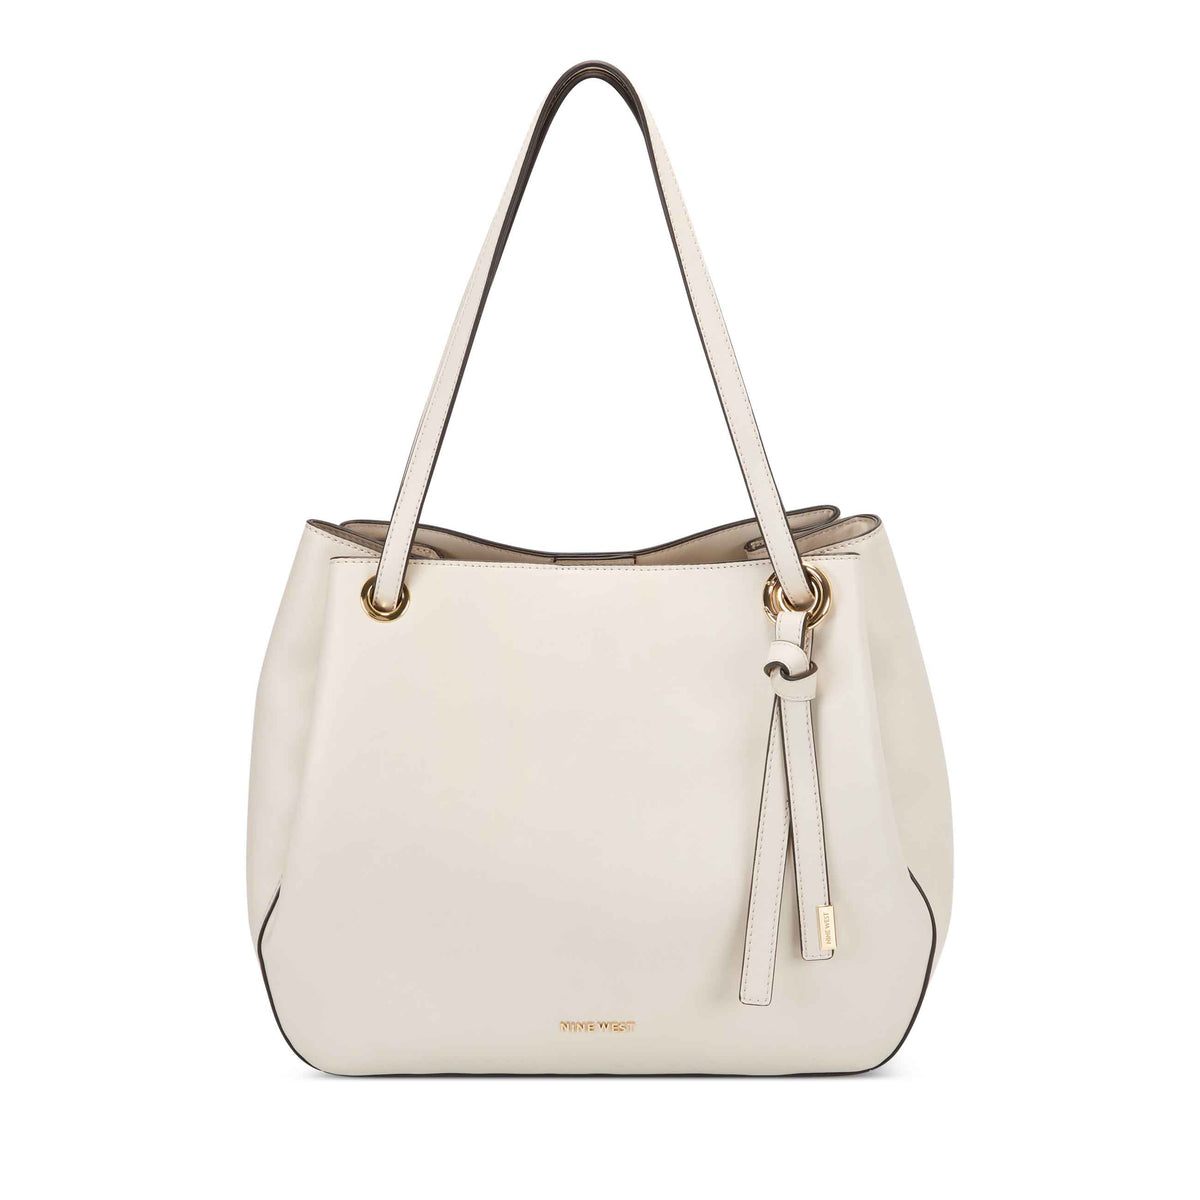 bellport-jet-set-carryall-in-milk